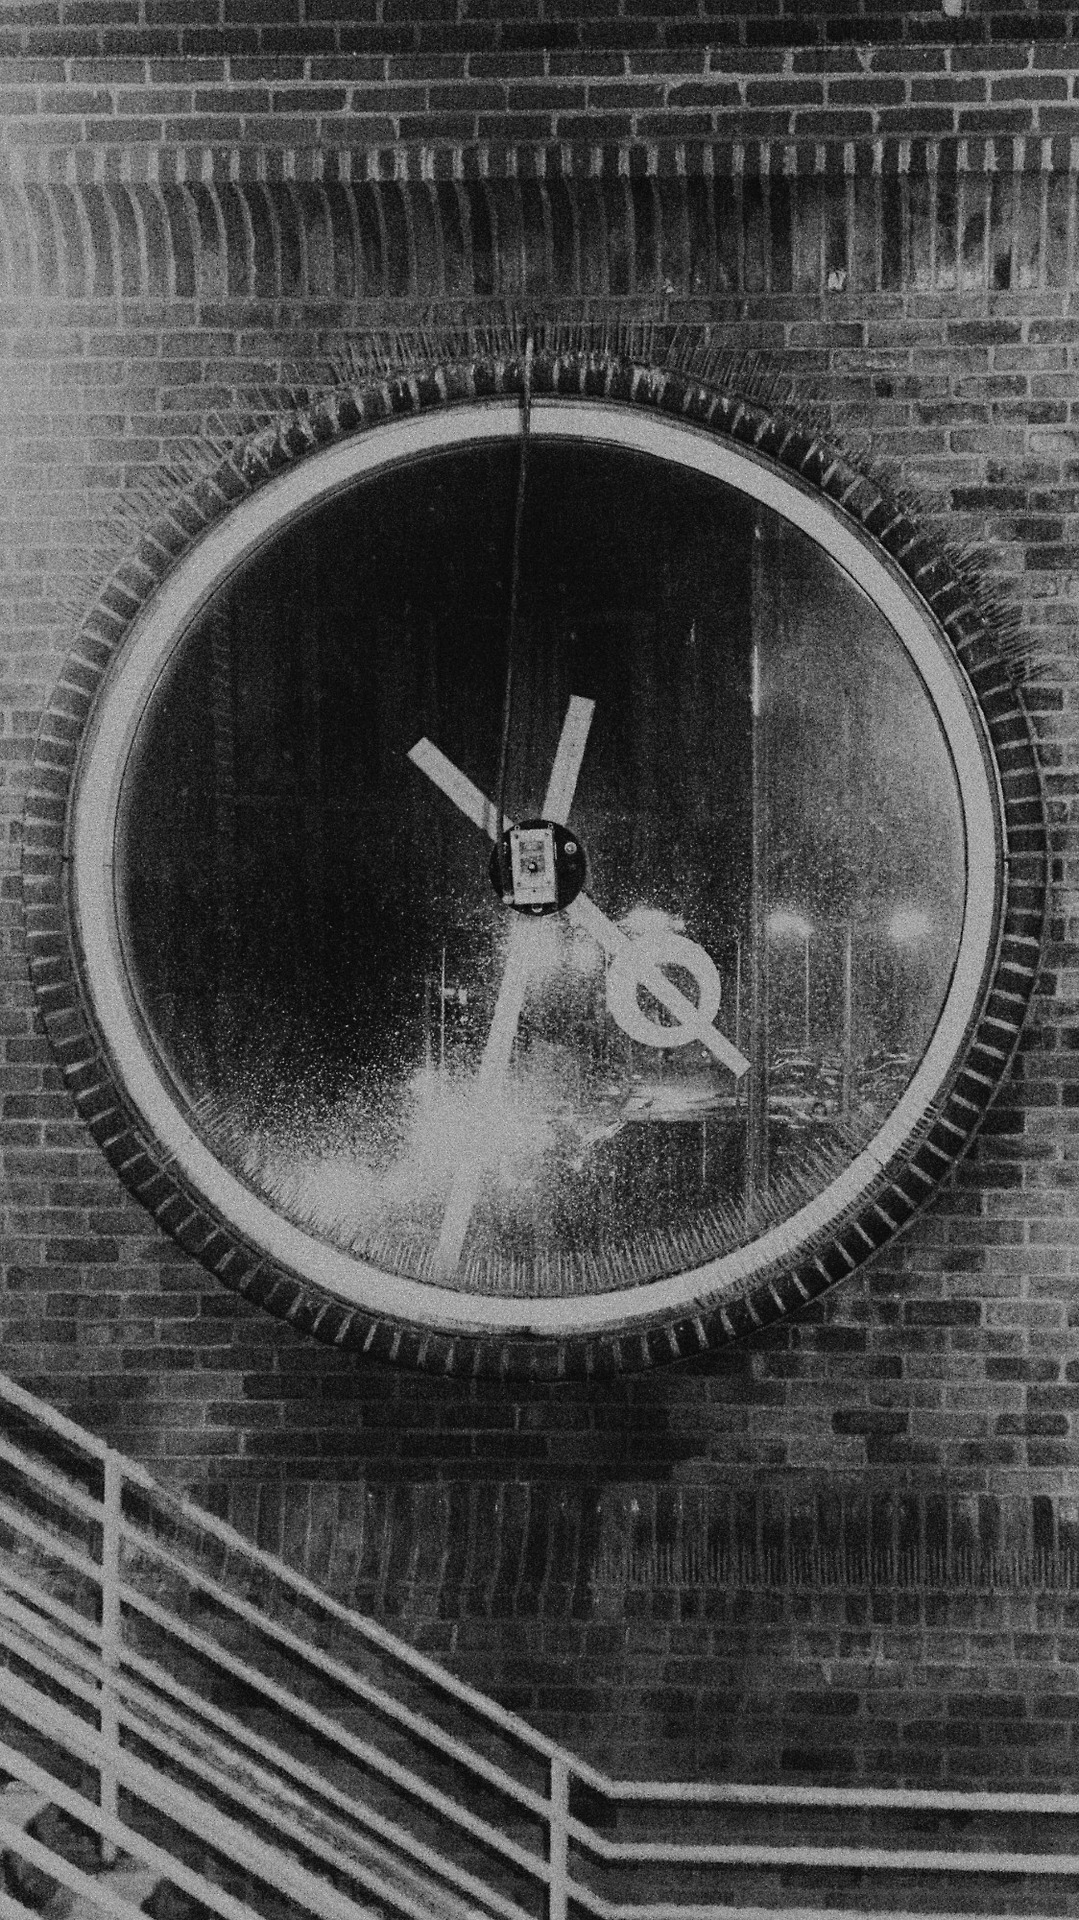 This is a clock at the Ronkonoma LIRR Station.   I love the way the clock acts as a window.   I thought a retro black and white treatment fit the mood this cold, rainy night.  #photography #blackandwhite #railroad